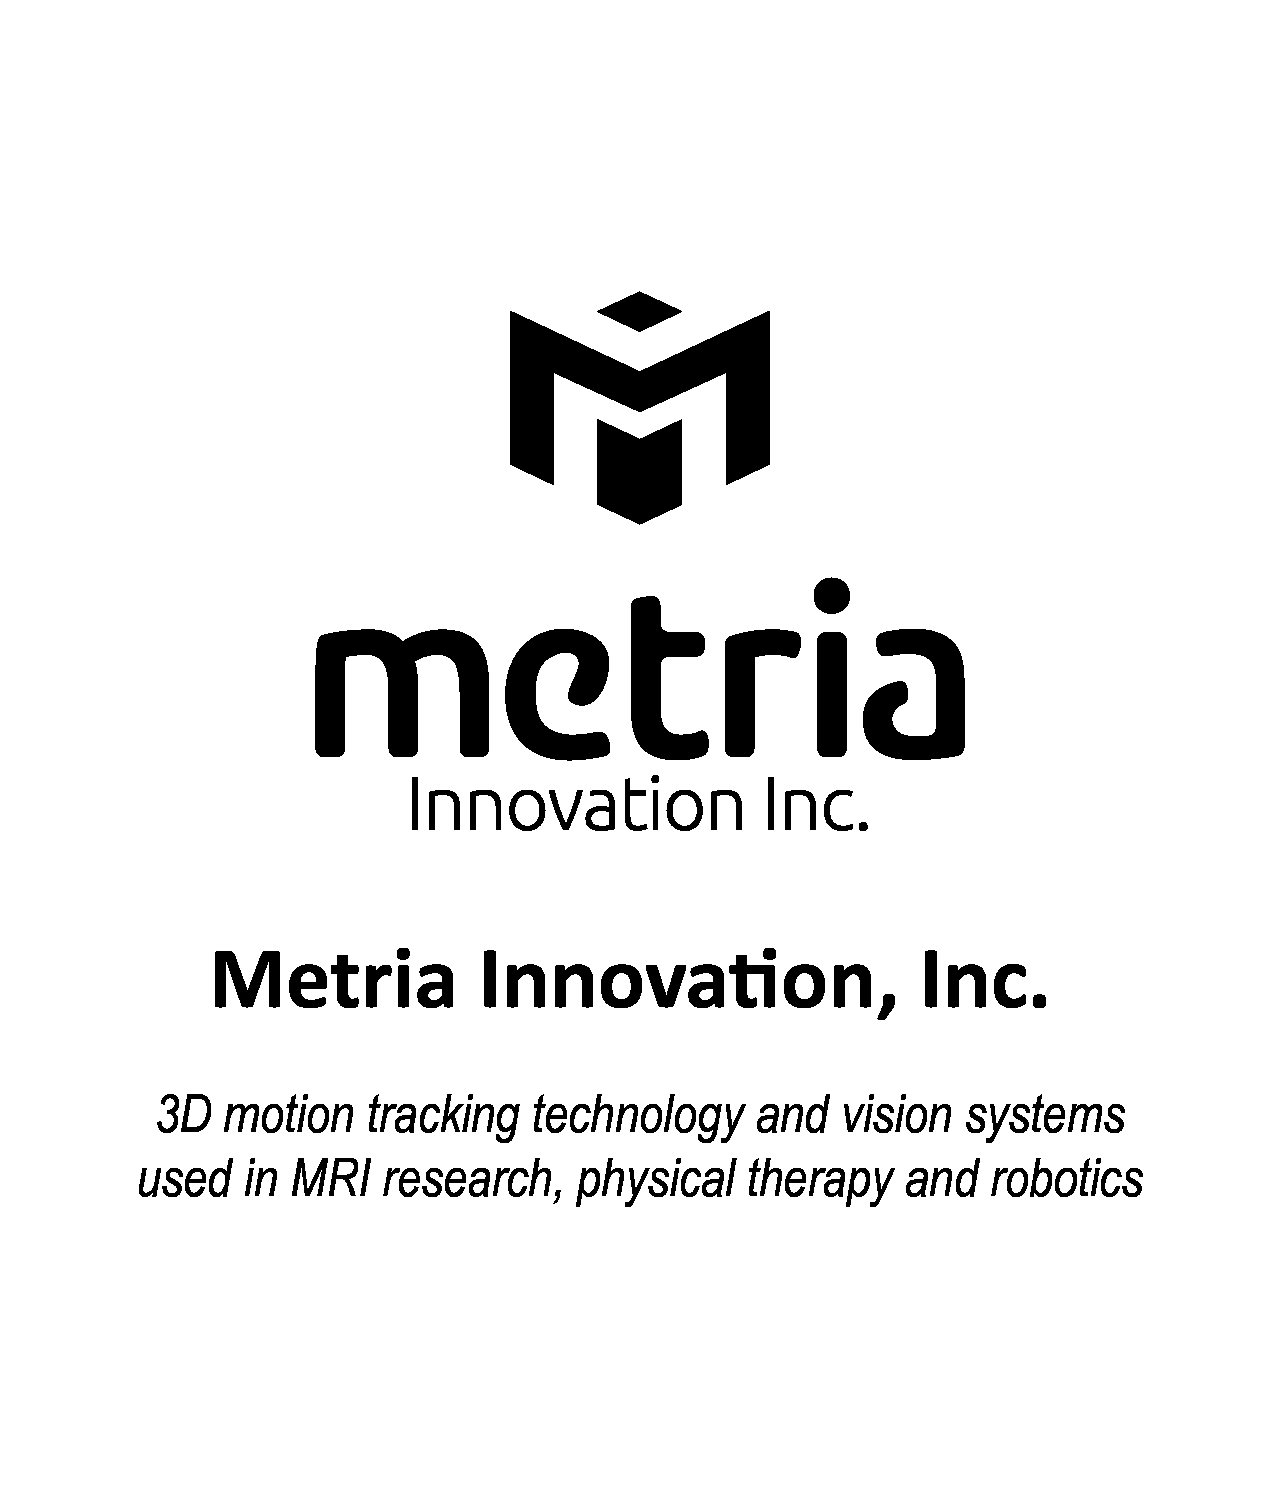 Metria Innovation